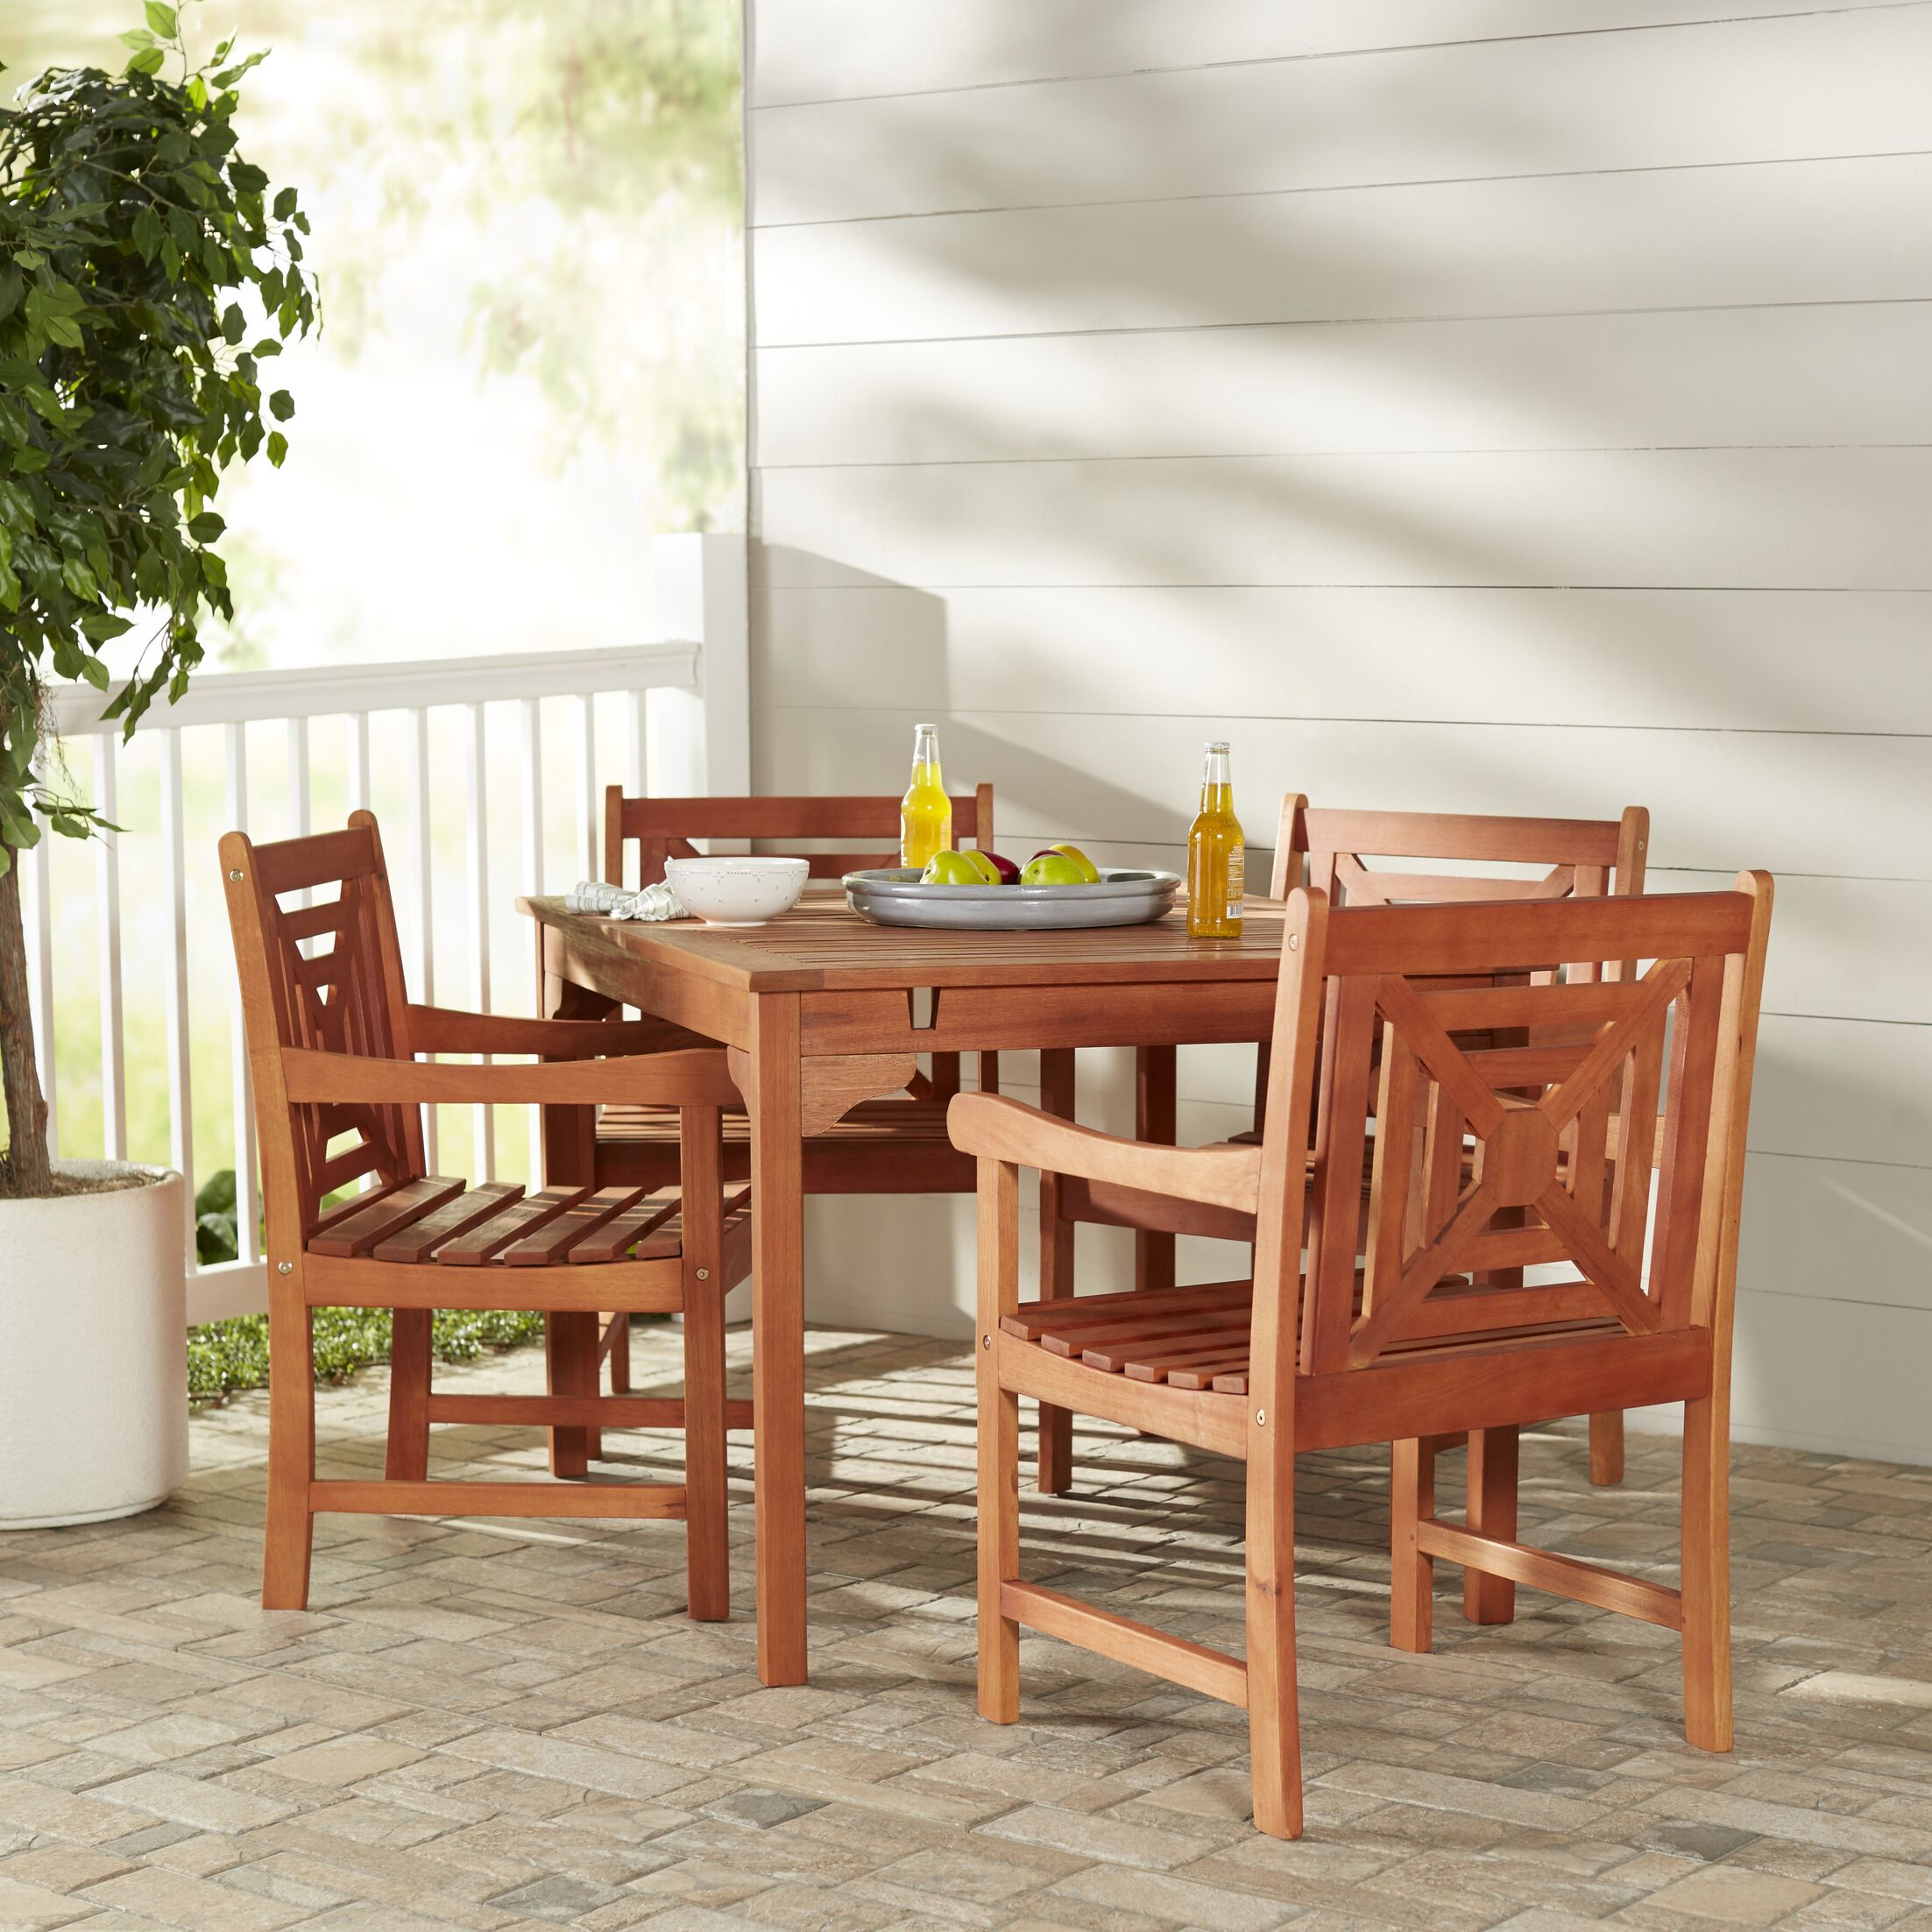 b05835b9c395 Patio Dining Sets Blythe 5 Piece Dining Set March 2019